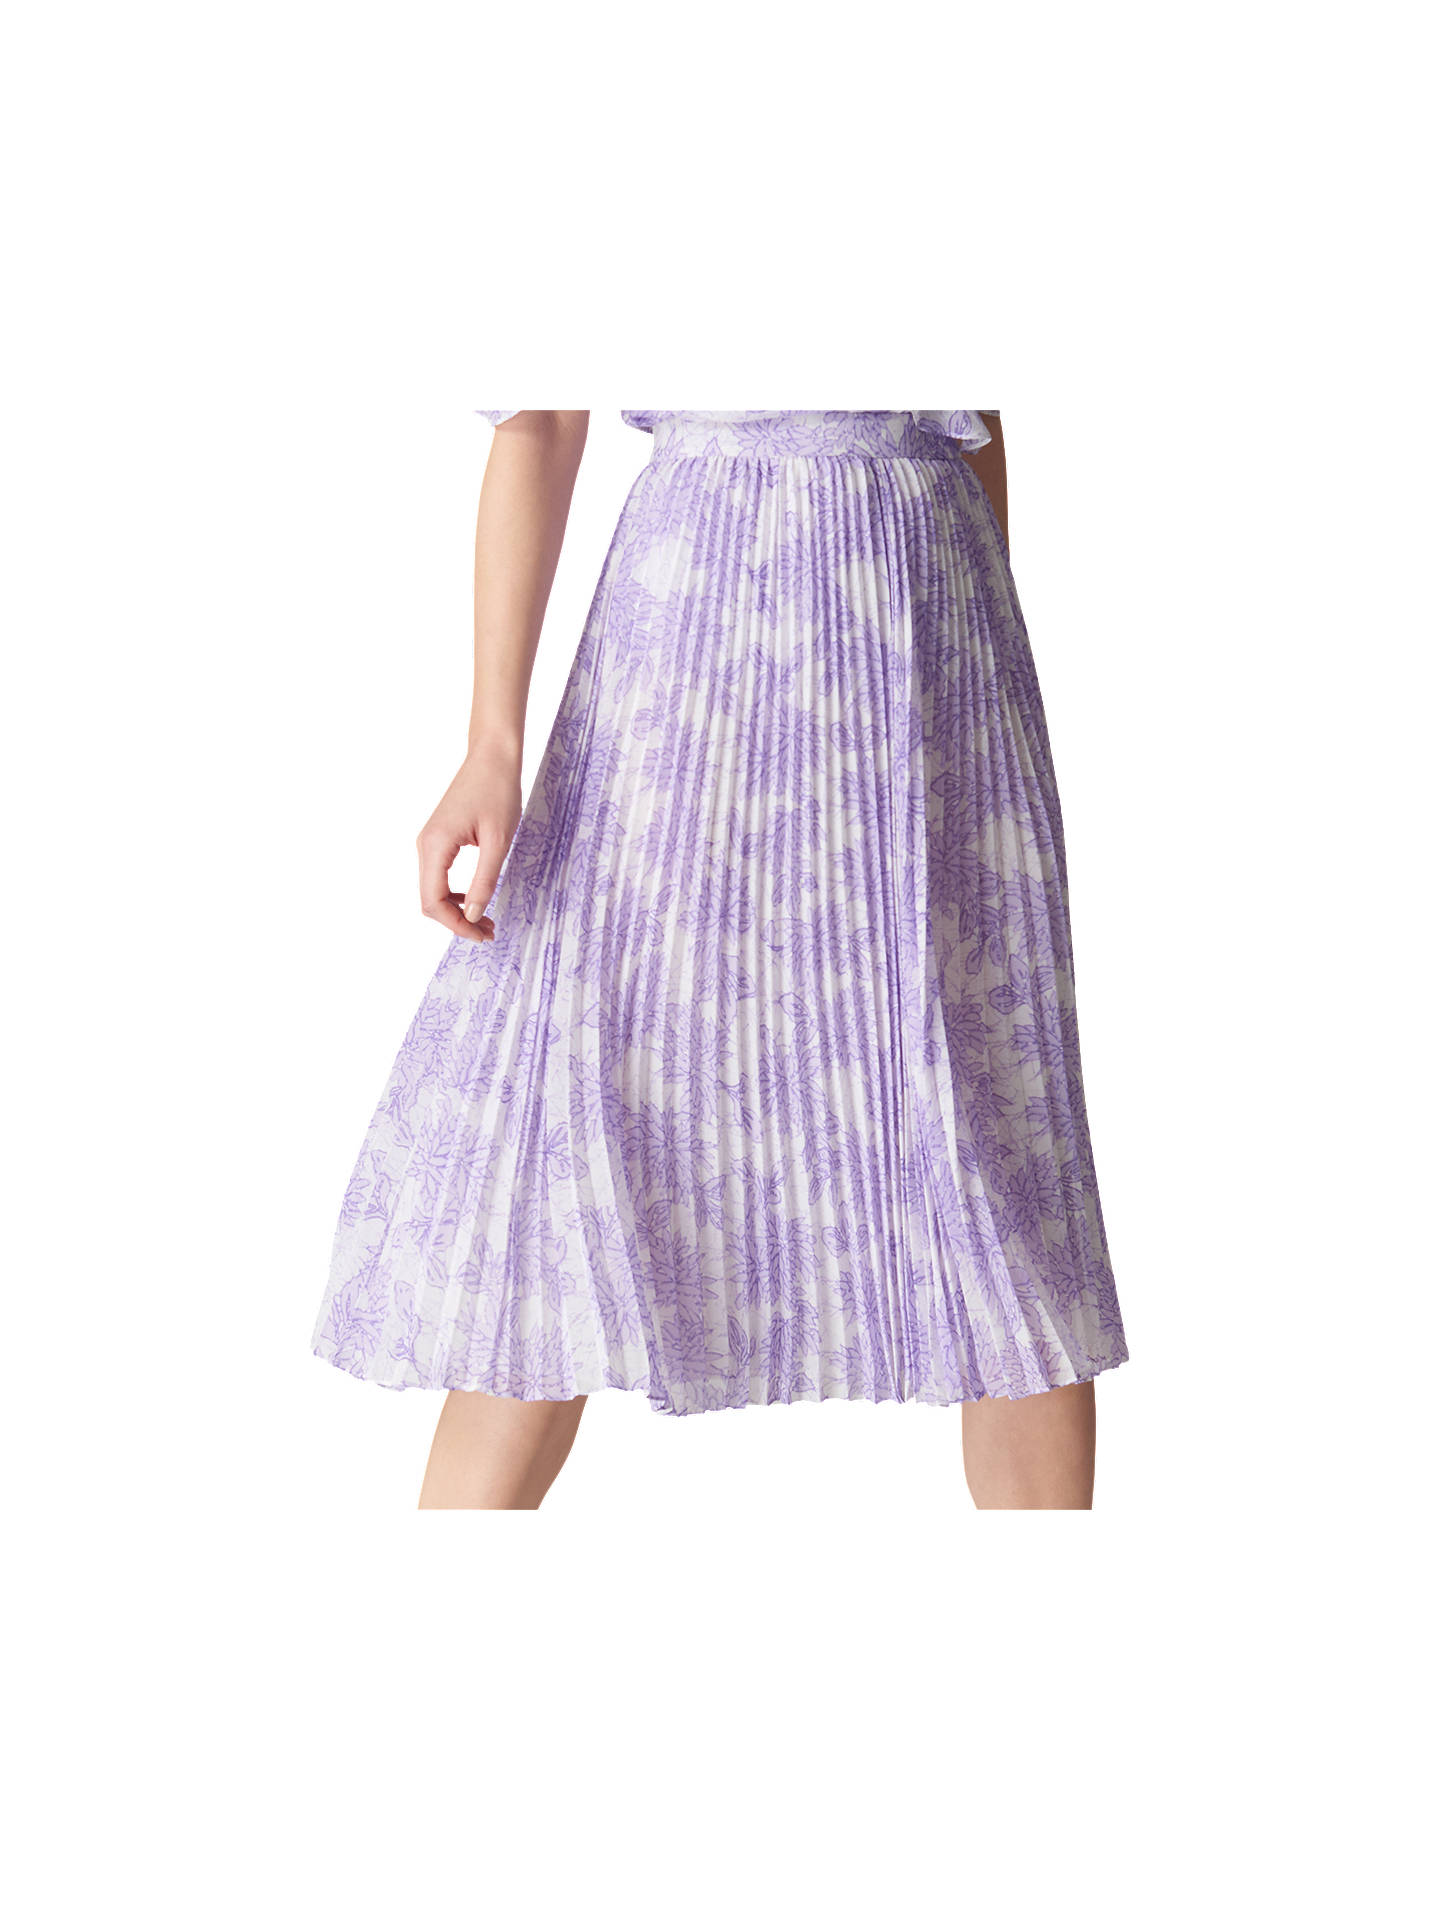 8428e920c92c Buy Whistles Batik Lily Pleated Skirt, Lilac, 6 Online at johnlewis.com ...